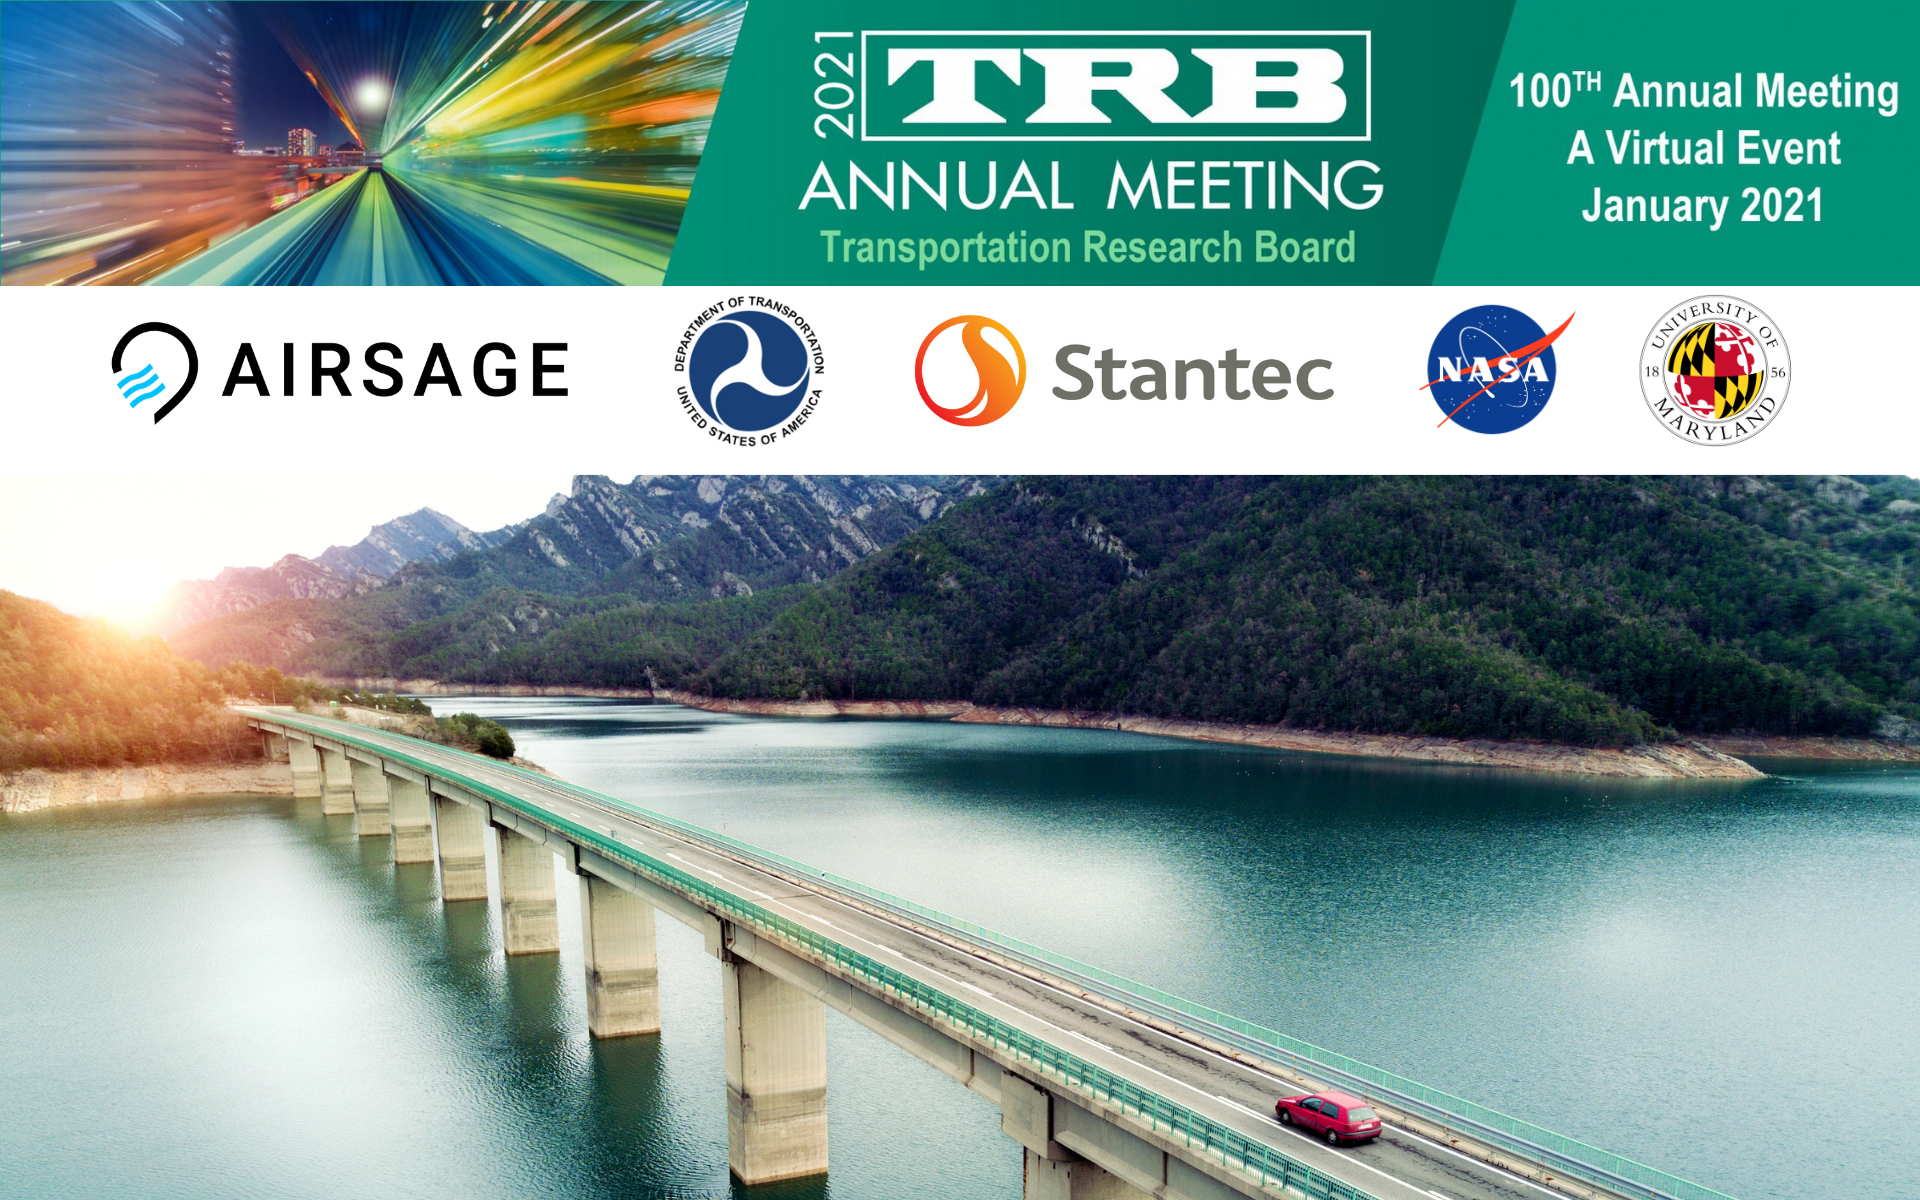 TRB goes digital: TOP 8 BOOTHS from the 100th Annual TRB Meeting 2021